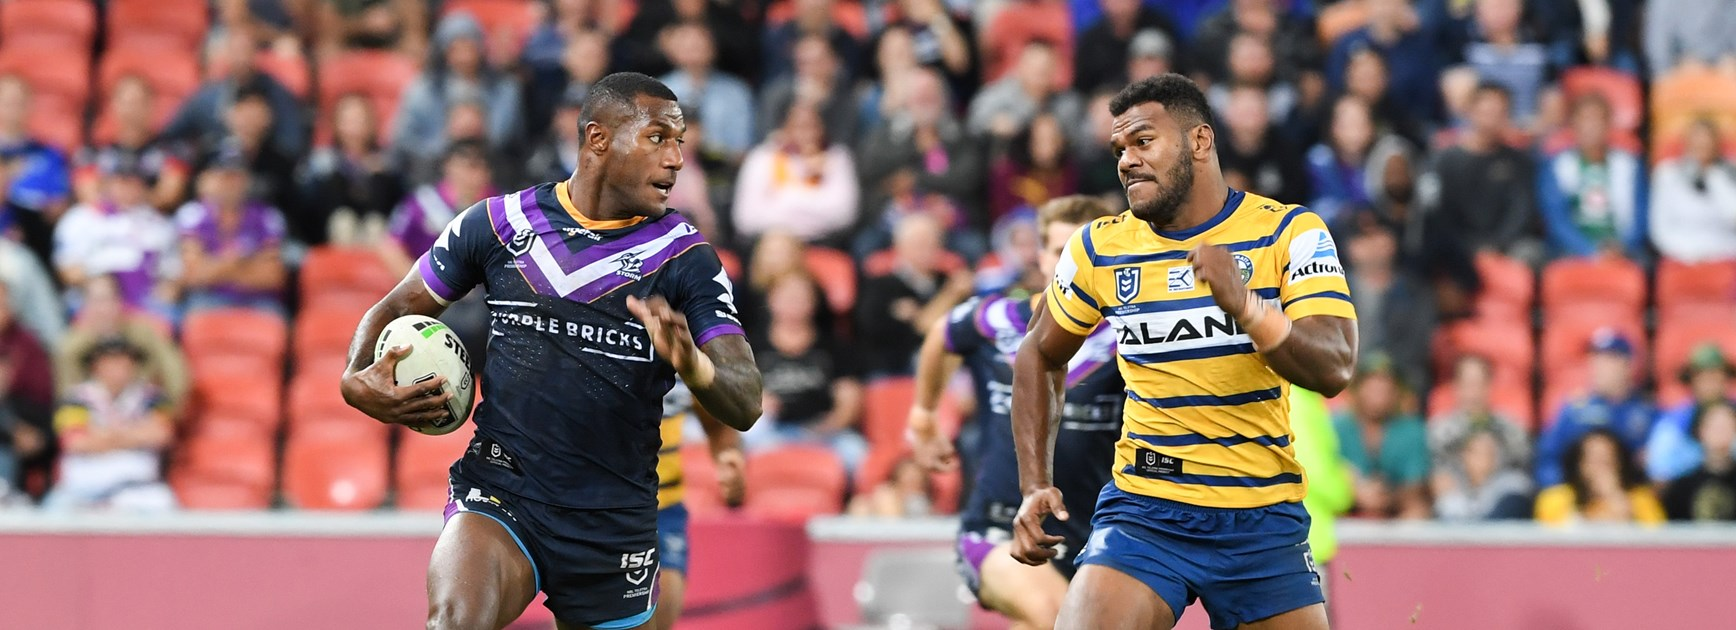 Rugby-bound Vunivalu out to make final Storm season count